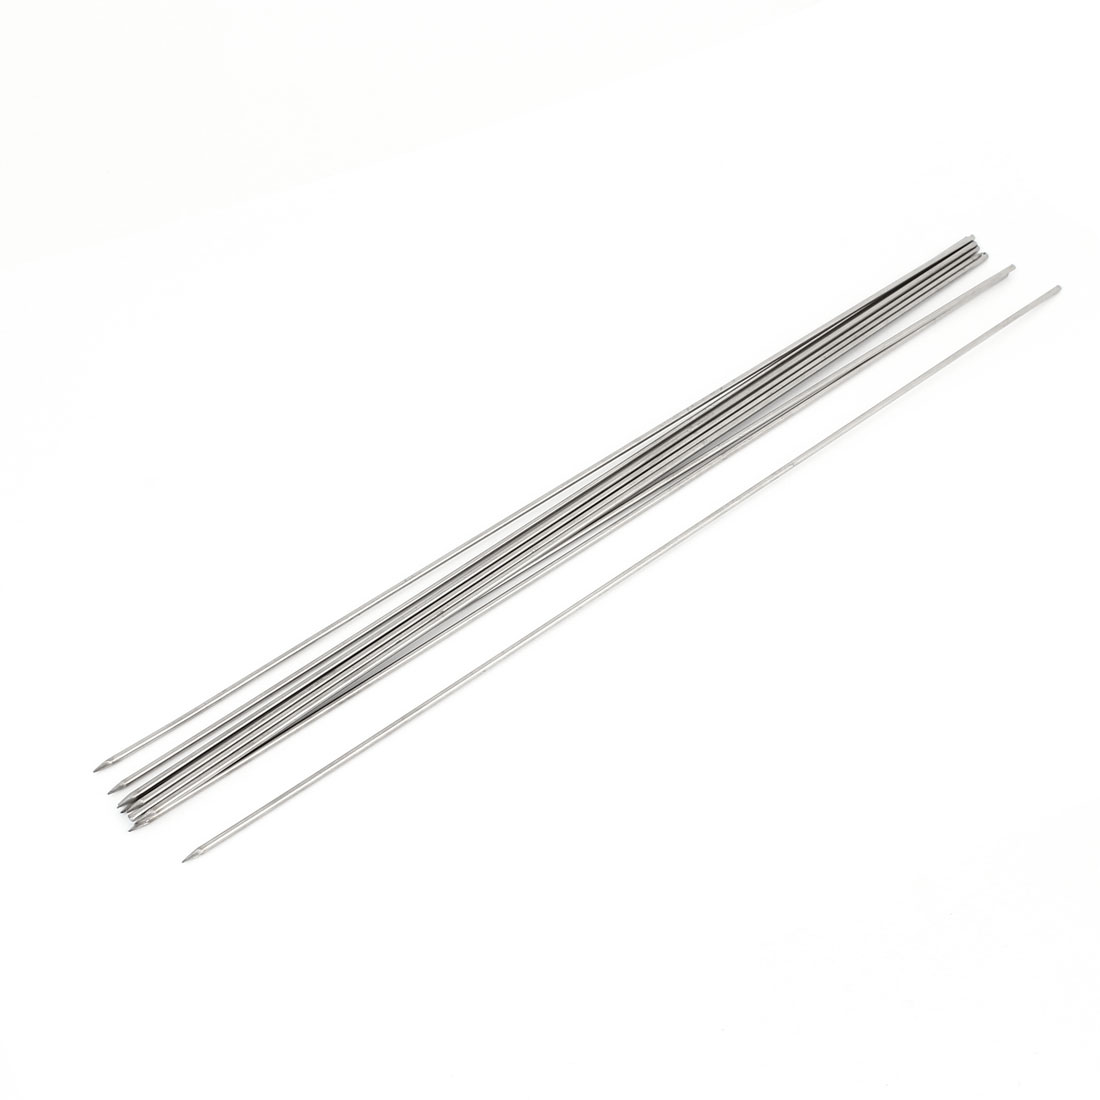 Outdoor 34cm Silver Tone Metal BBQ Needle Barbecue Skewers Sticks 10 Pcs